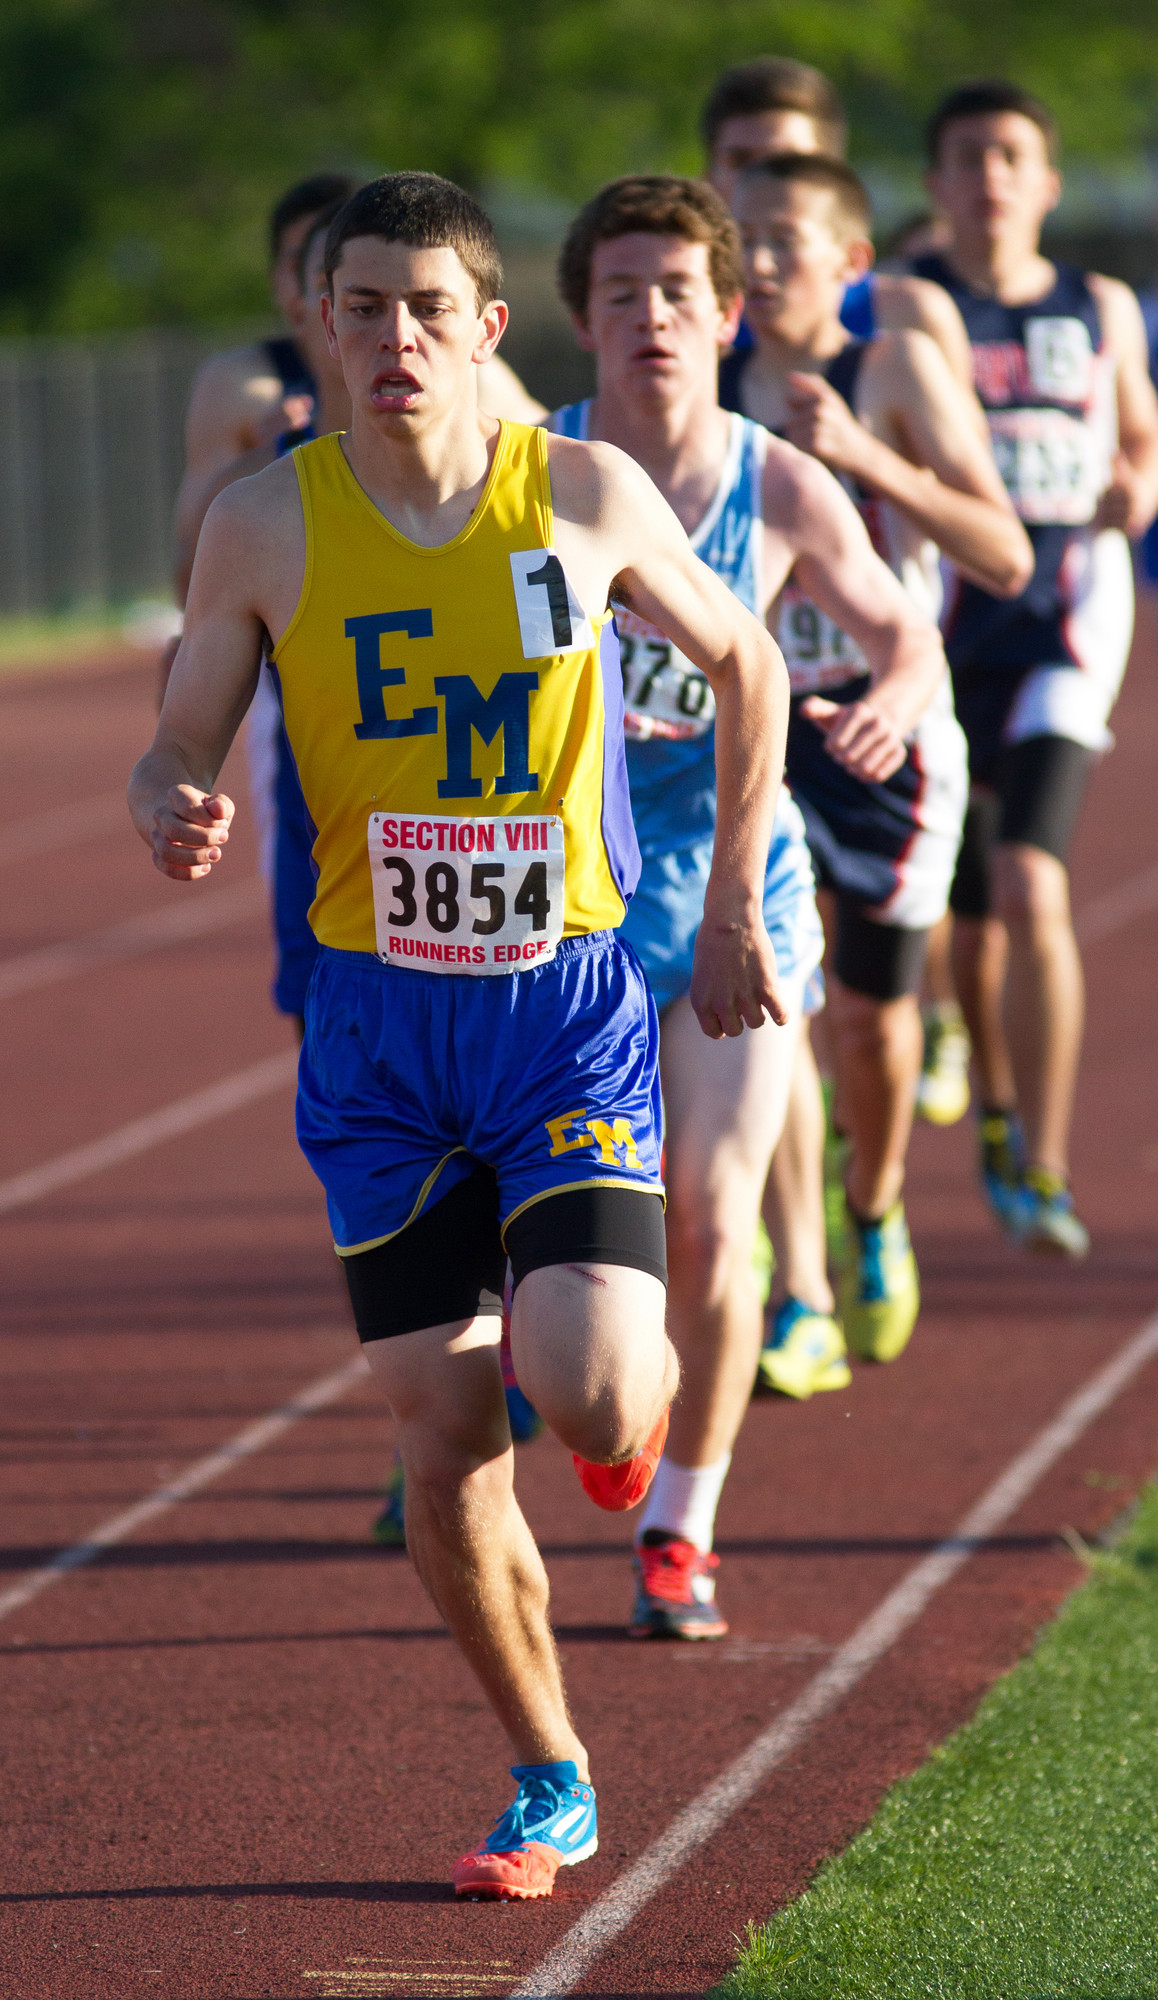 East Meadow senior Brad Kaufmann won the Nassau Class AAA 3,000 meter steeplechase event with a time of 9 minutes, 44.1 seconds.